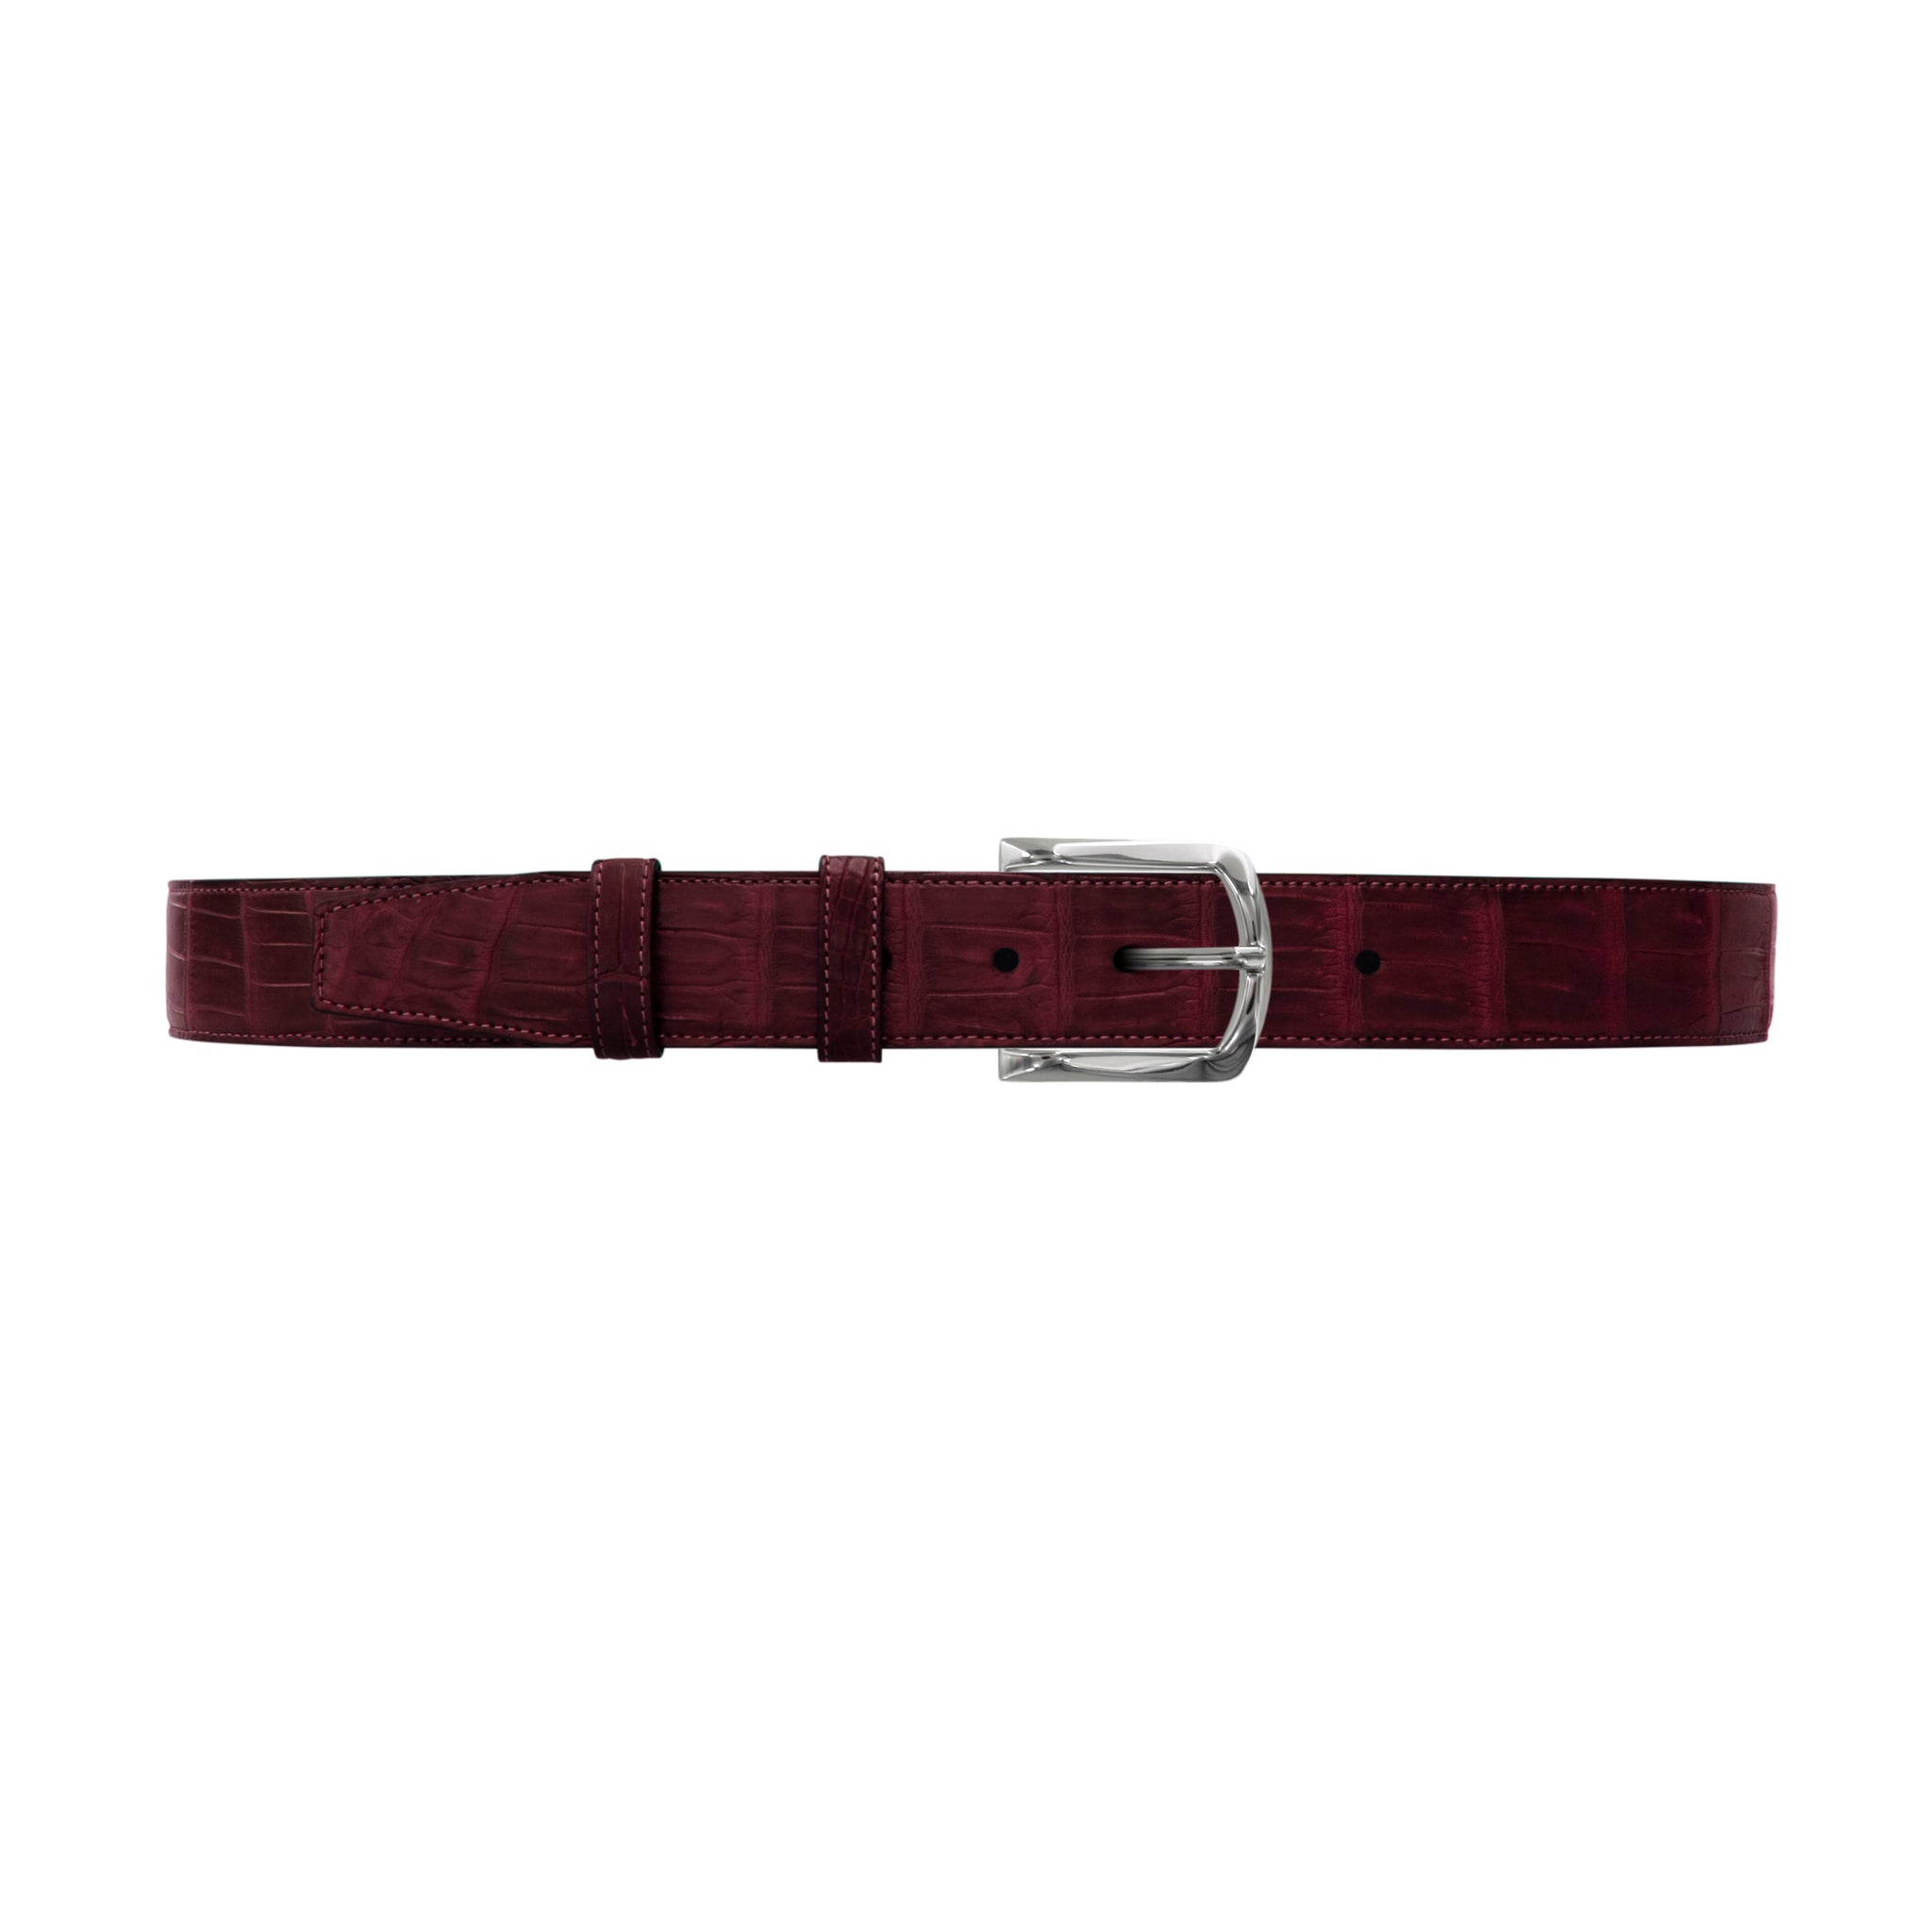 "1 1/2"" Burgundy Seasonal Belt with Sutton Dress Buckle in Polished Nickel"